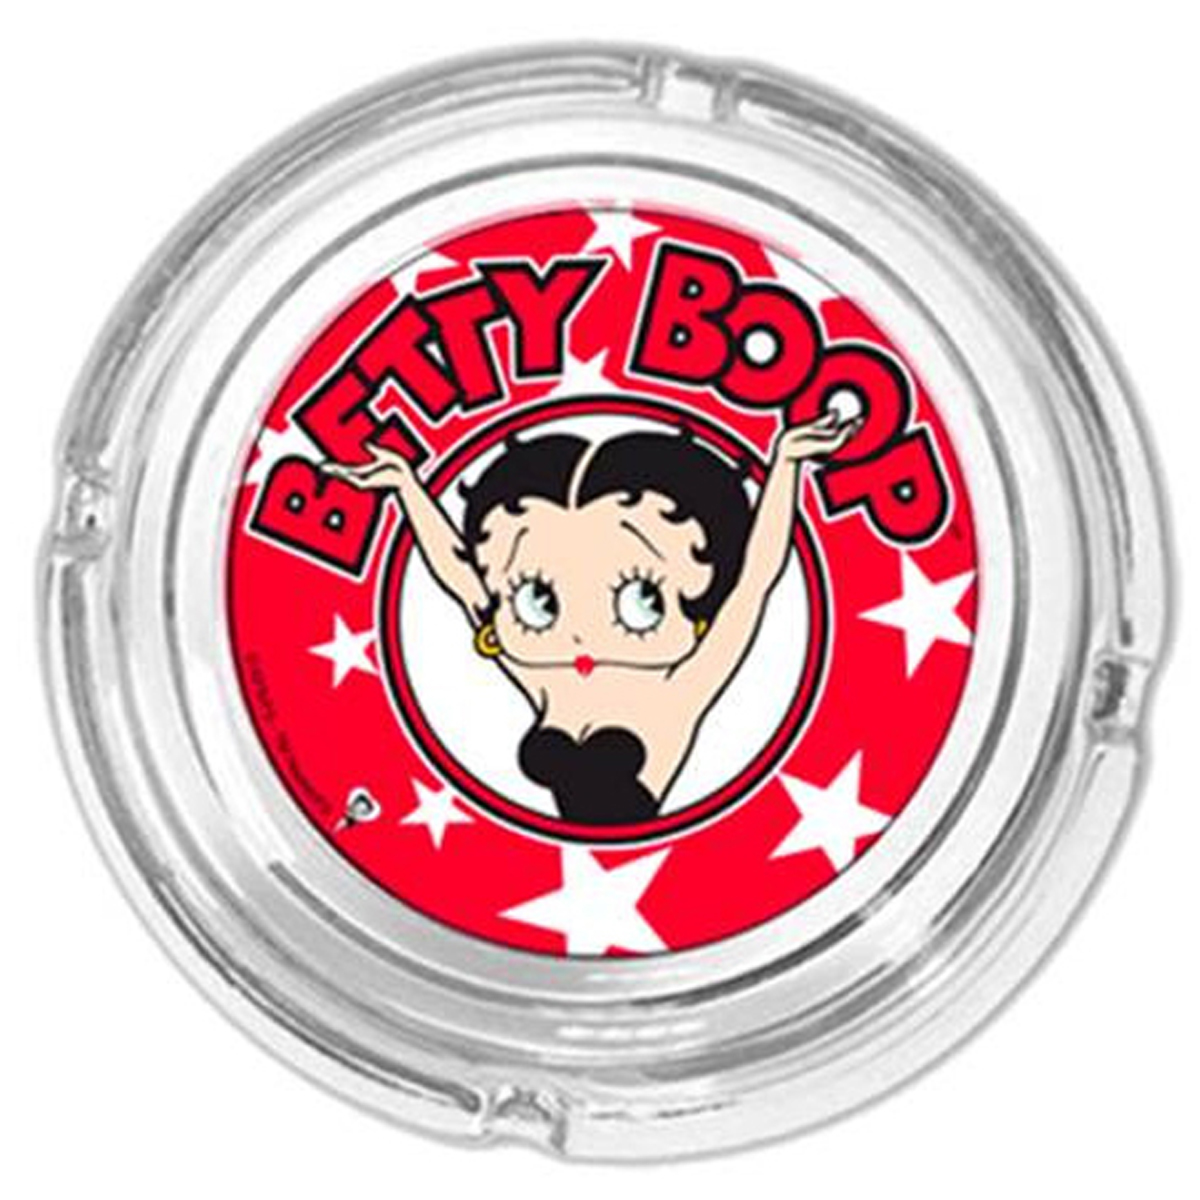 Cendrier verre \'Betty Boop\' rouge - 11x4 cm - [R1609]